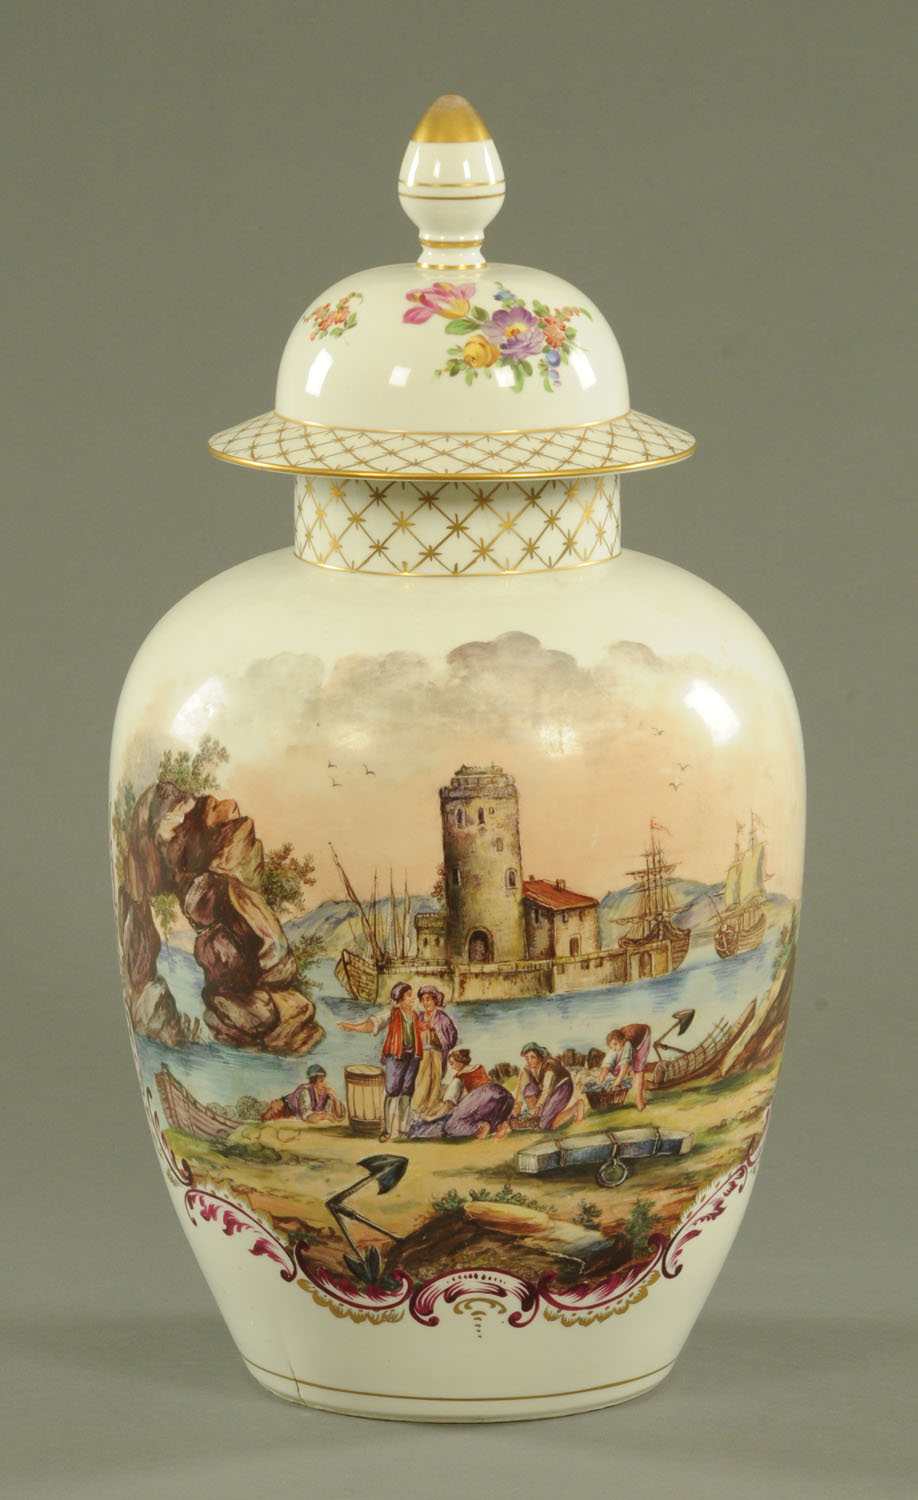 Lot 51 - A large Samson of Paris porcelain vase and cover, late 19th century,